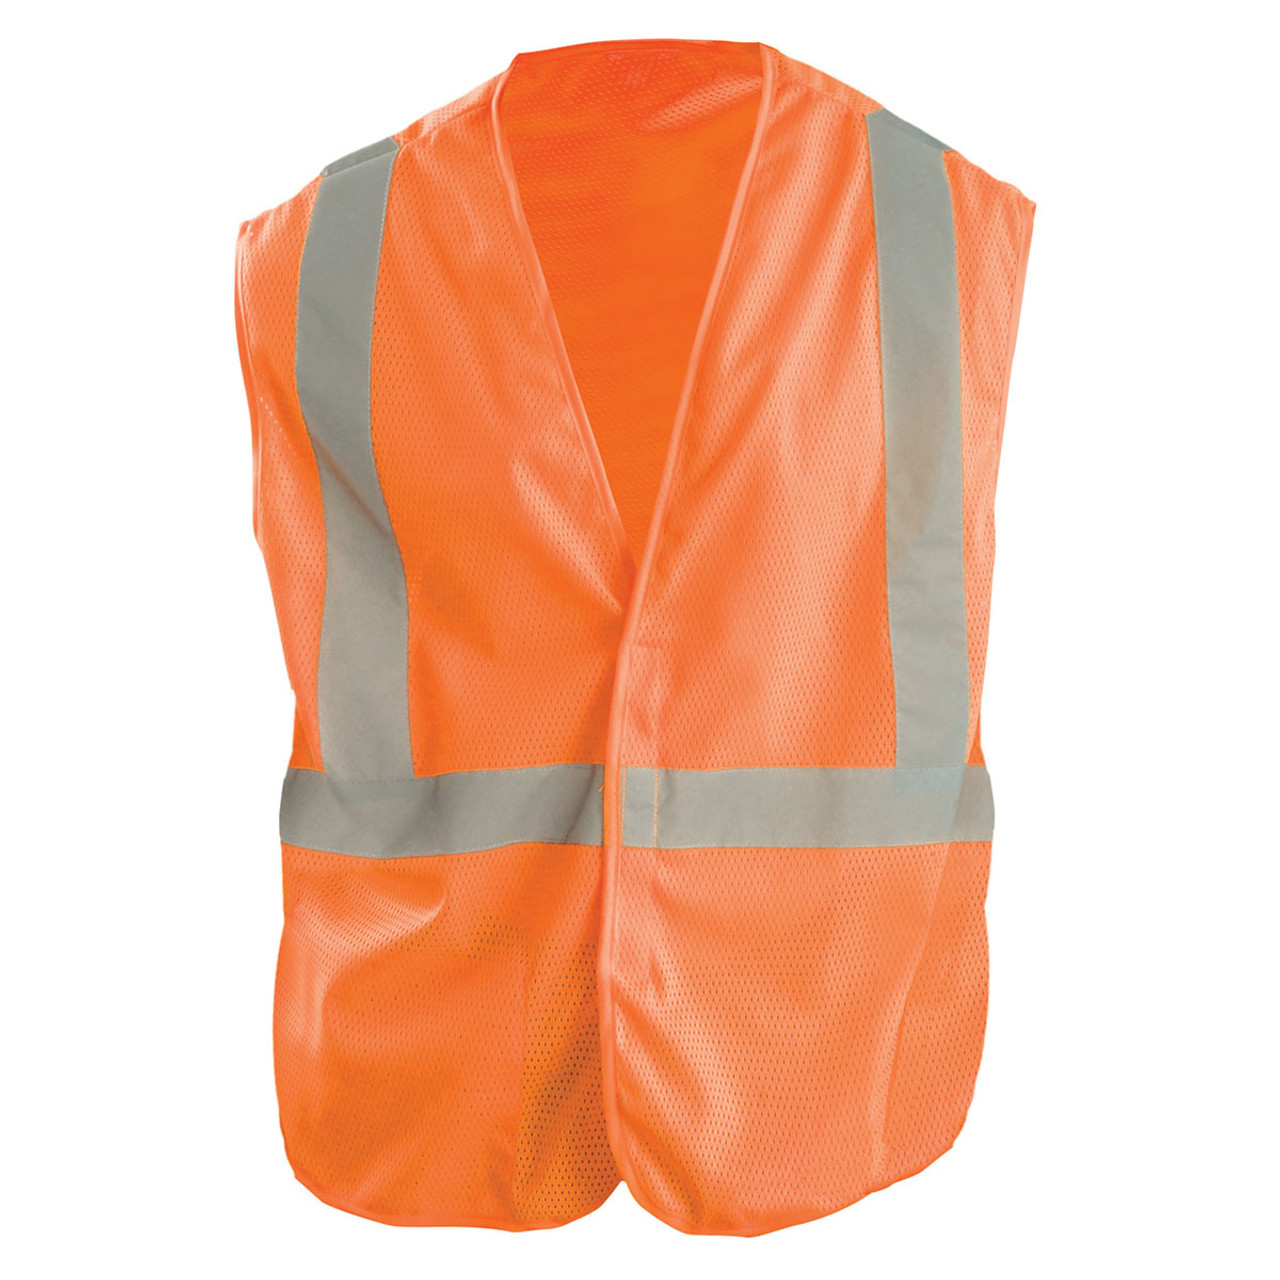 Workplace Safety Supplies Smart Reflective Safety Vest Pockets Breathable Yellow Orange Mesh Vest Work Wear